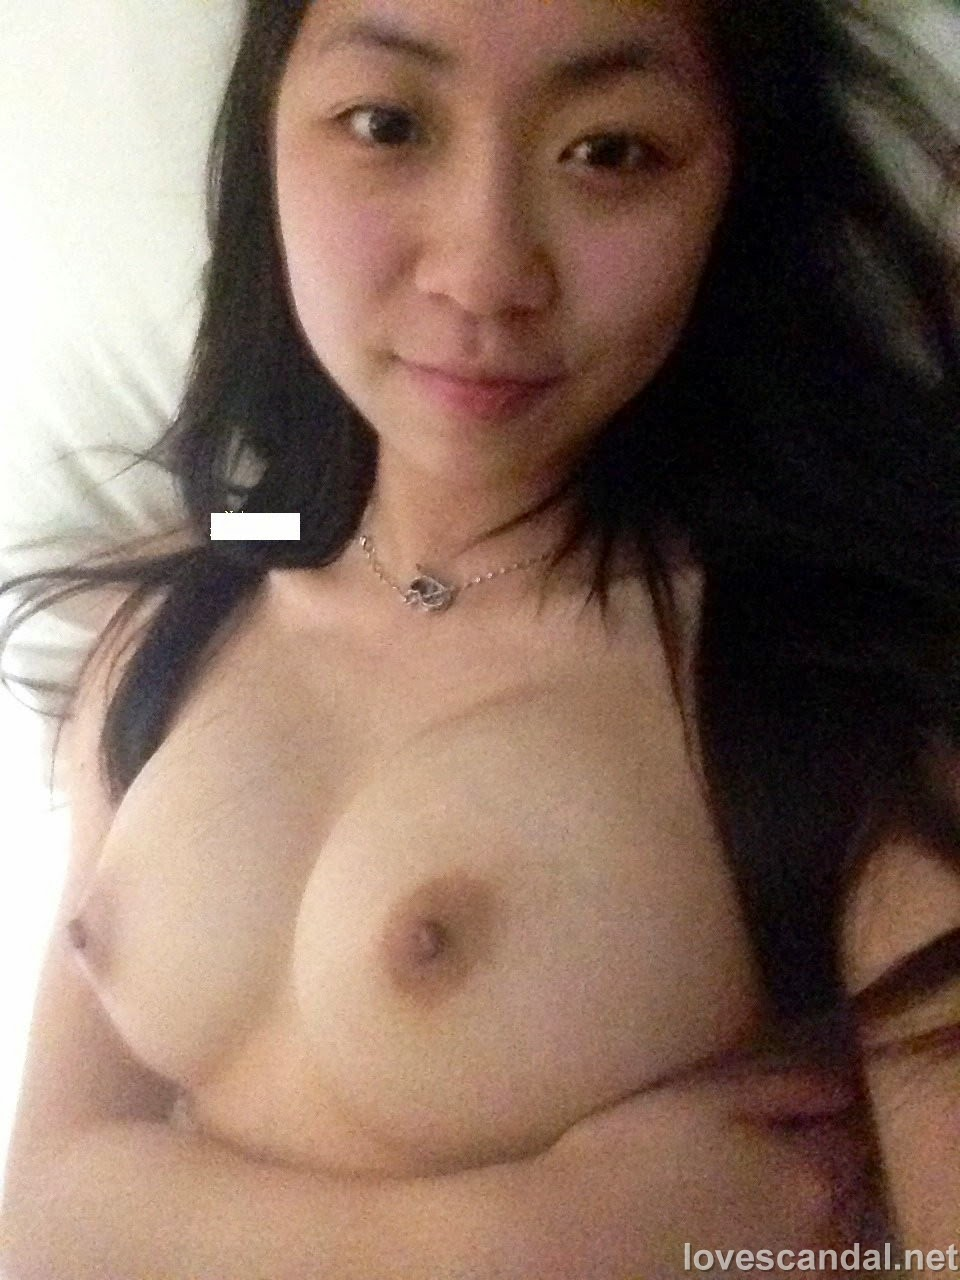 Girls hong kong nude